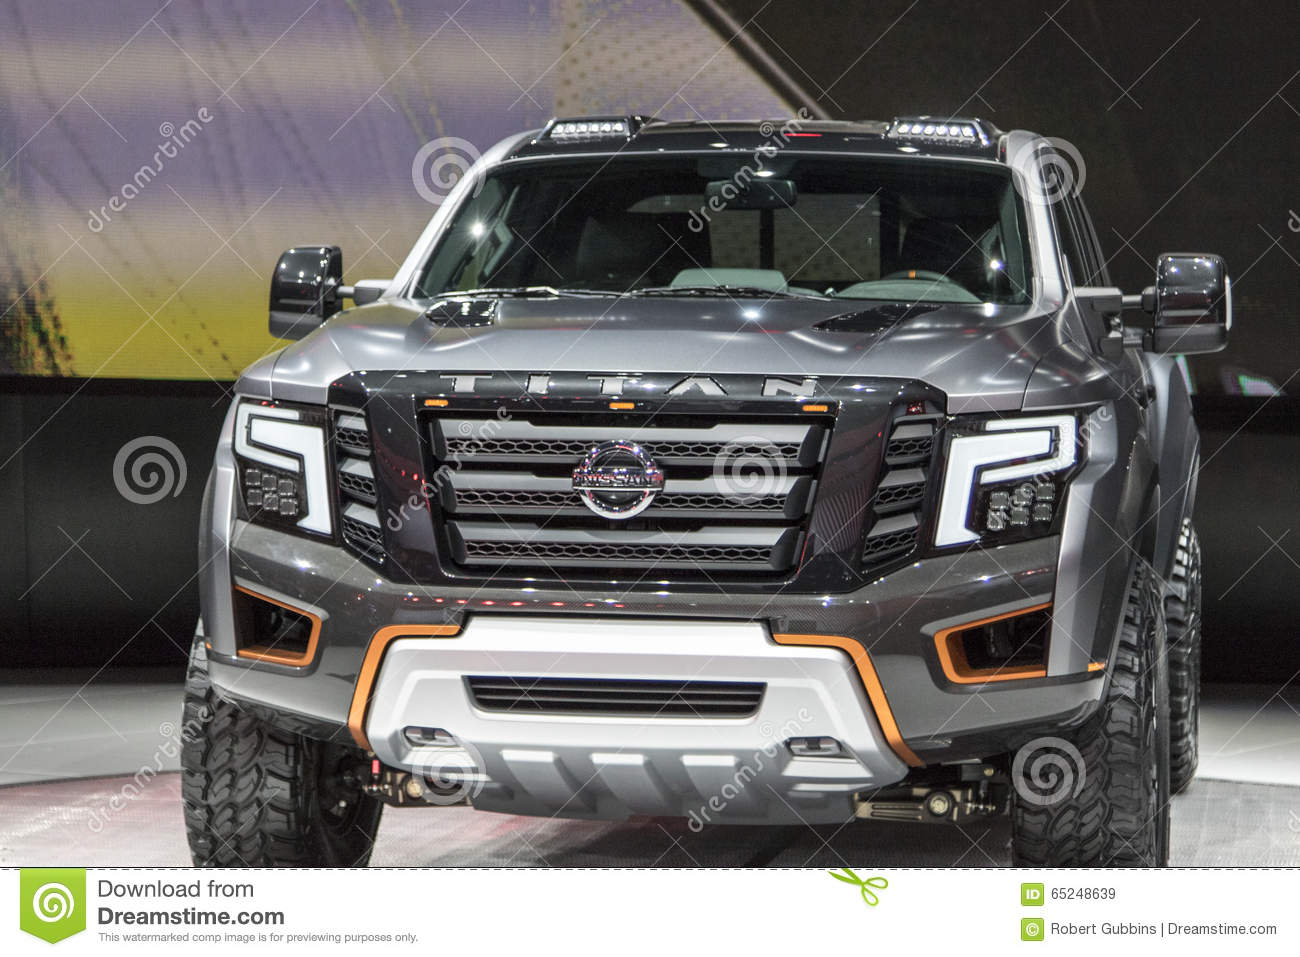 detroit 17 de janeiro o caminh o 2017 de nissan titan pickup no imagem de stock editorial. Black Bedroom Furniture Sets. Home Design Ideas